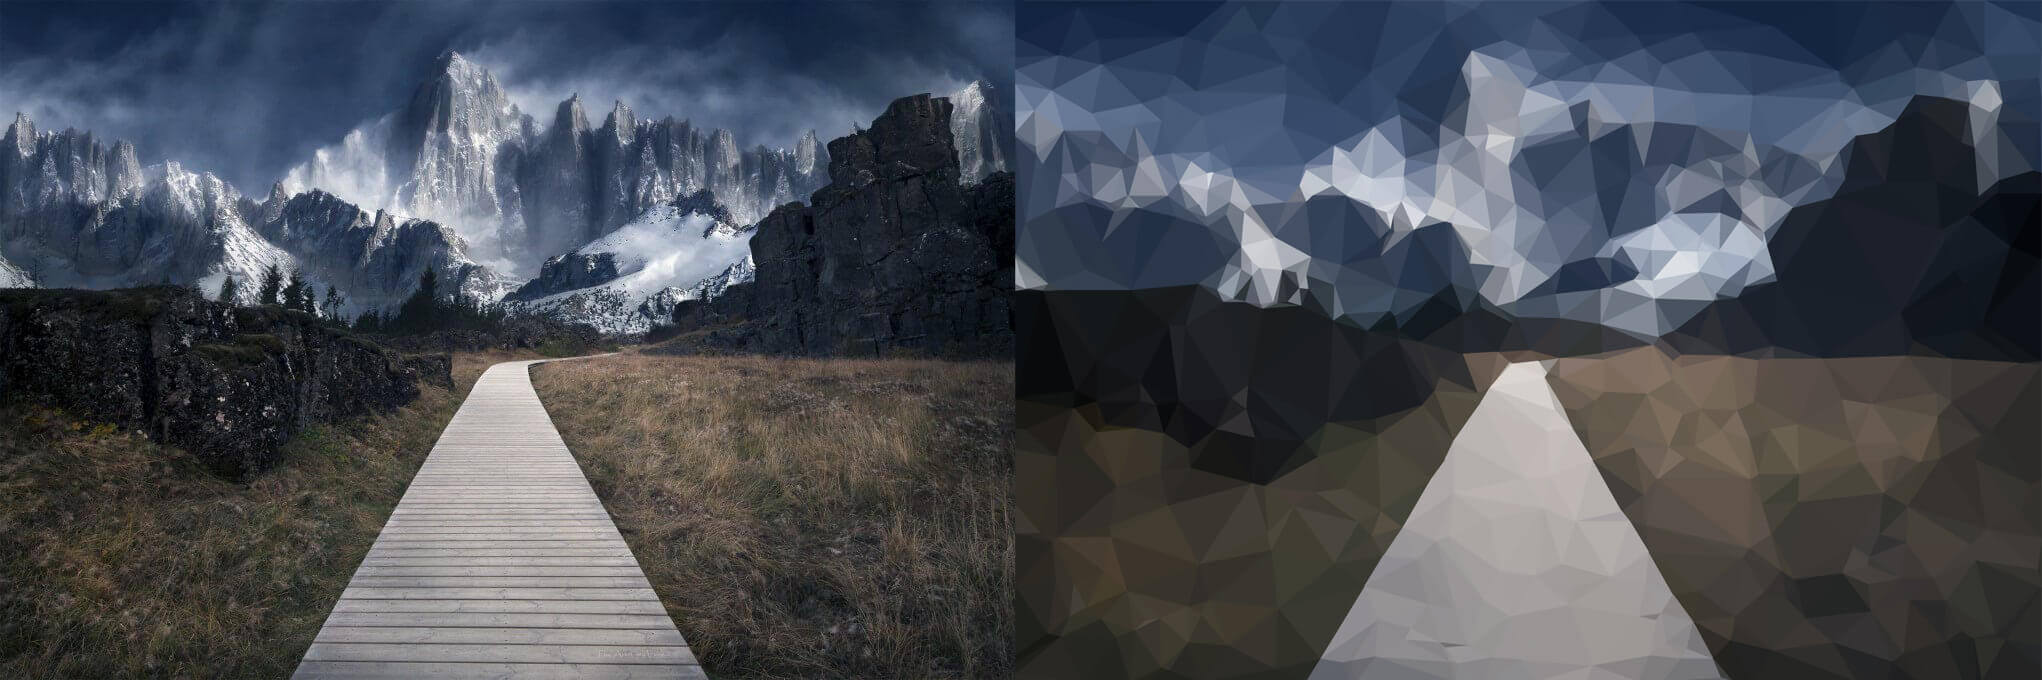 triangular effects plugin for photos